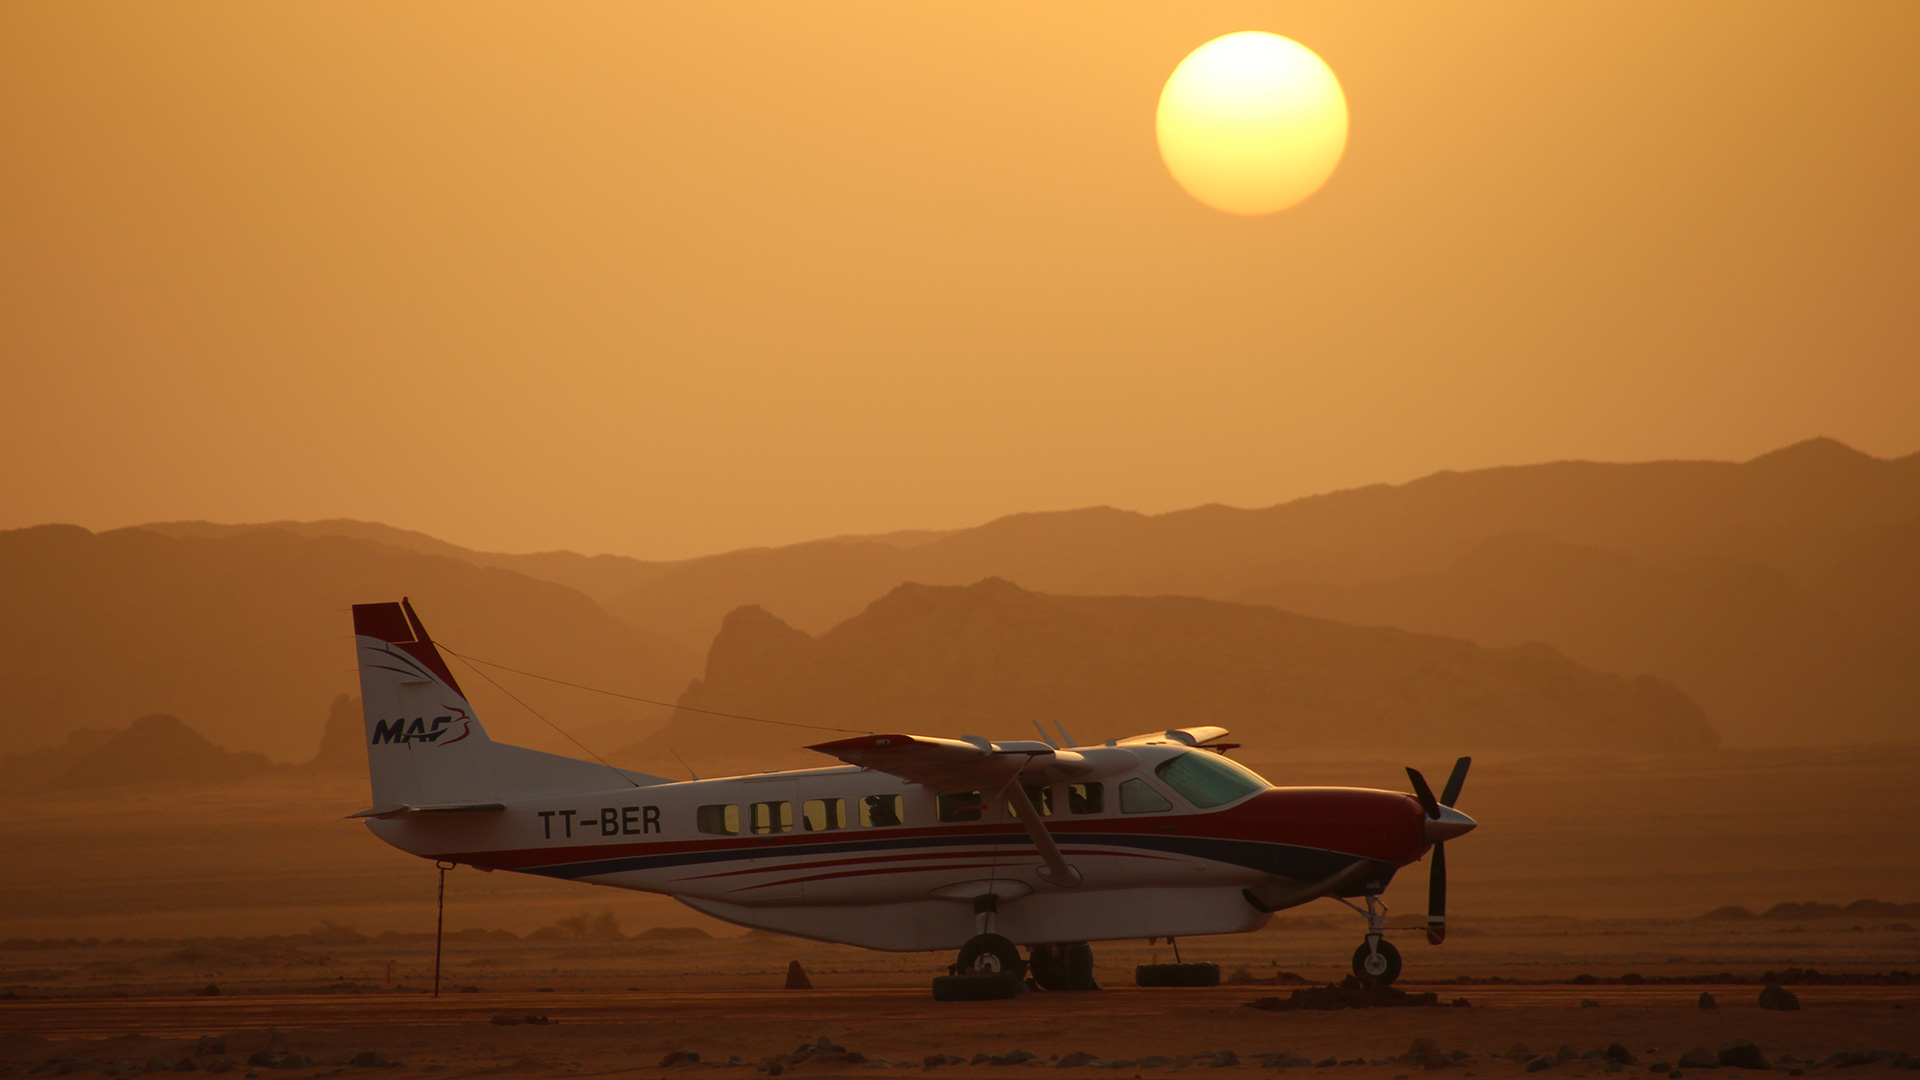 MAF plane grounded at sunset in Africa